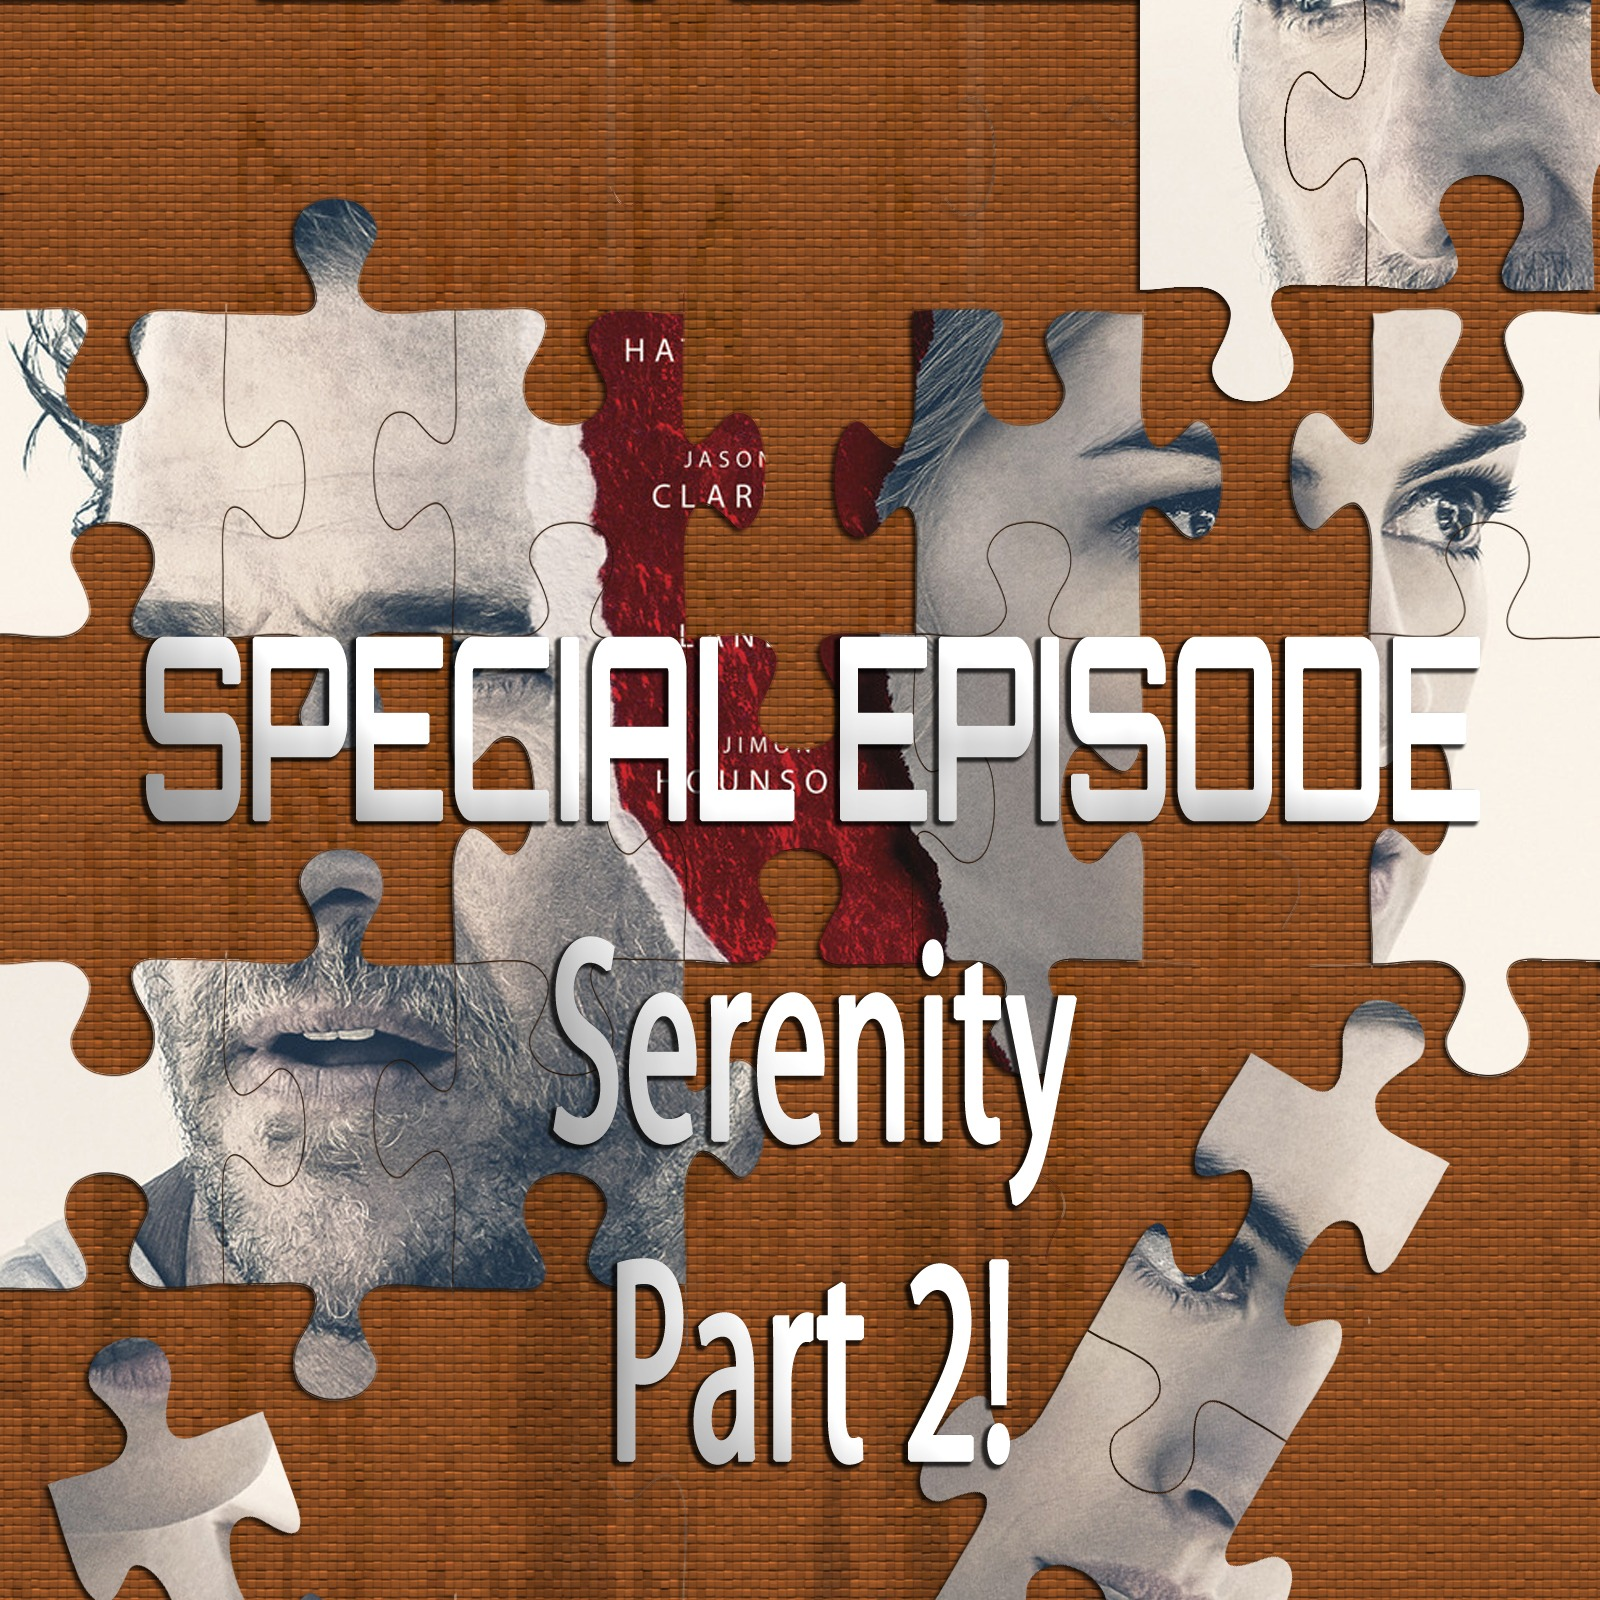 Serenity Part 2 (Featuring Joe Black)